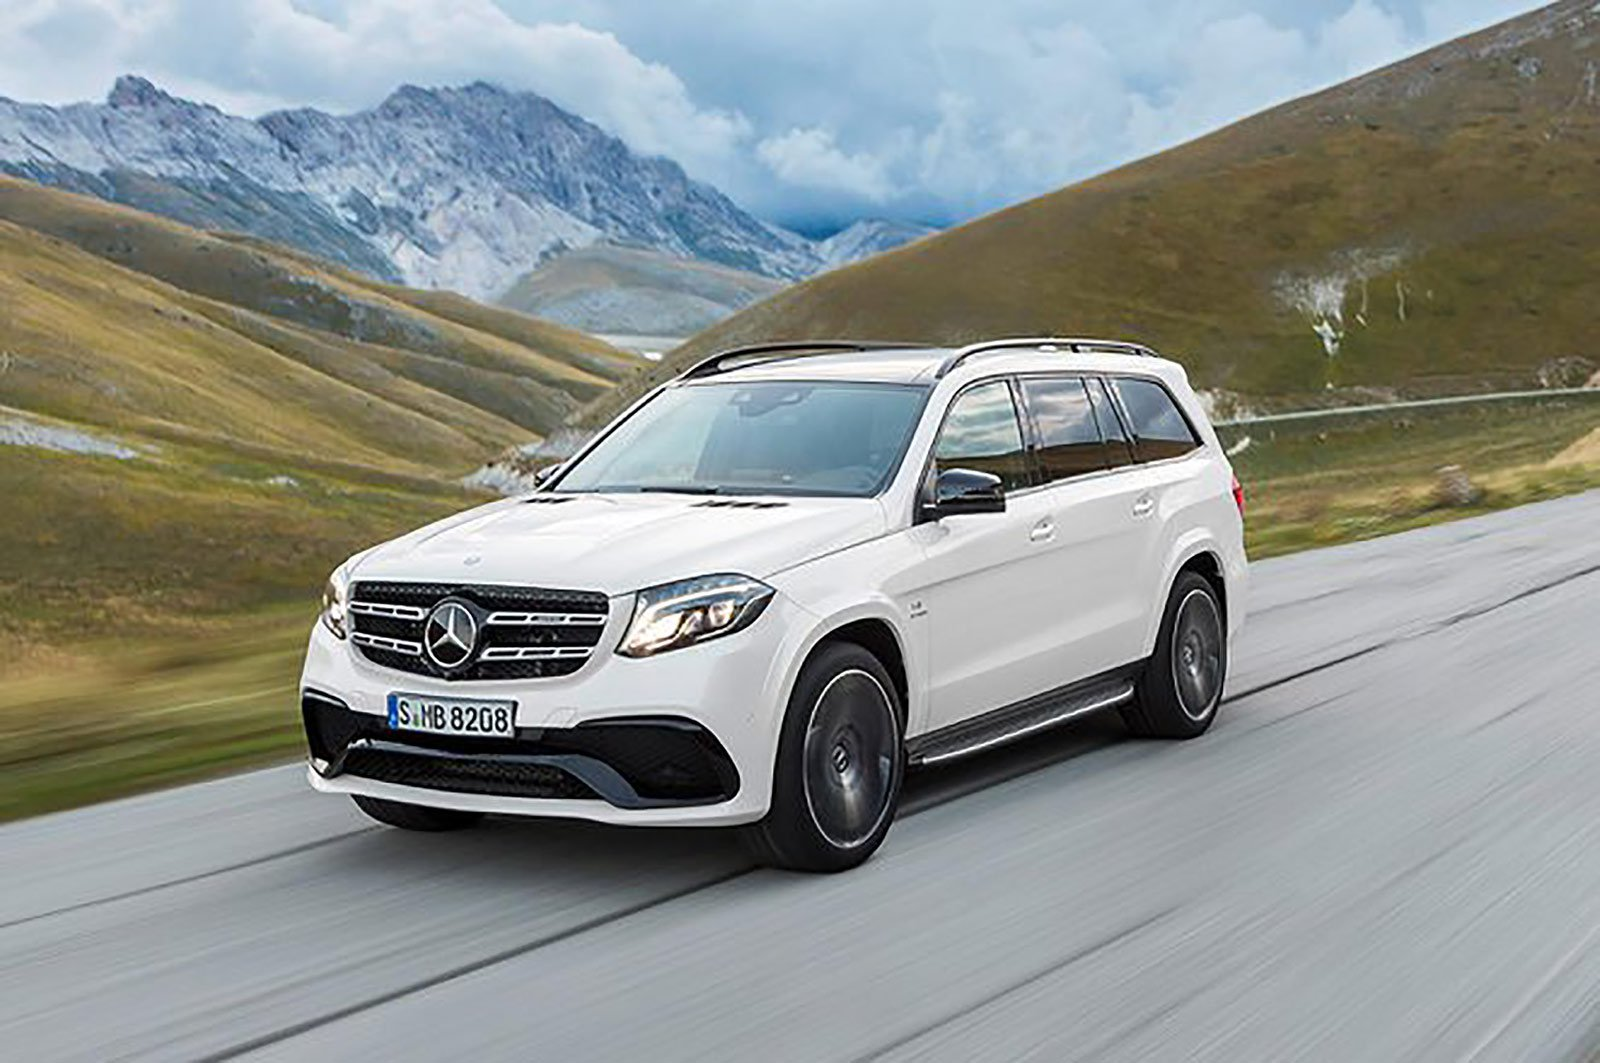 Mercedes-Benz GLS front and side